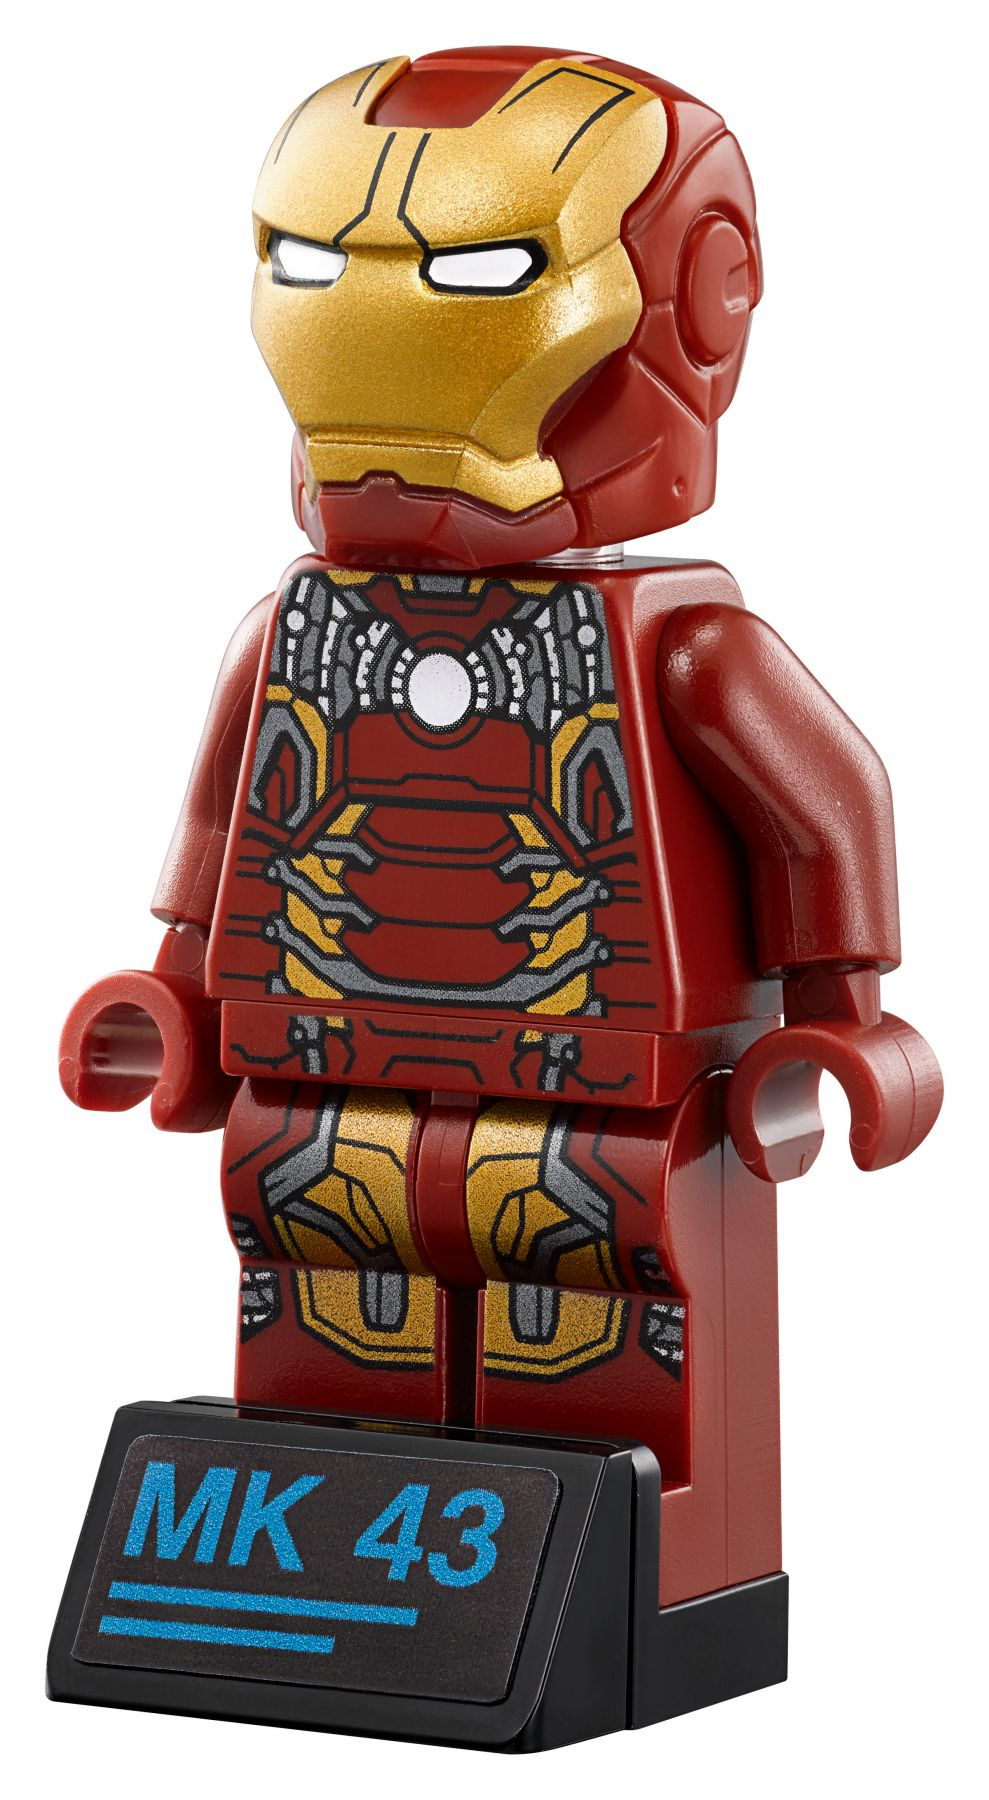 LEGO Super Heroes 76105 Marvel Avengers: Infinity War - The Hulkbuster: Ultron Edition LEGO_76105_alt3.jpg